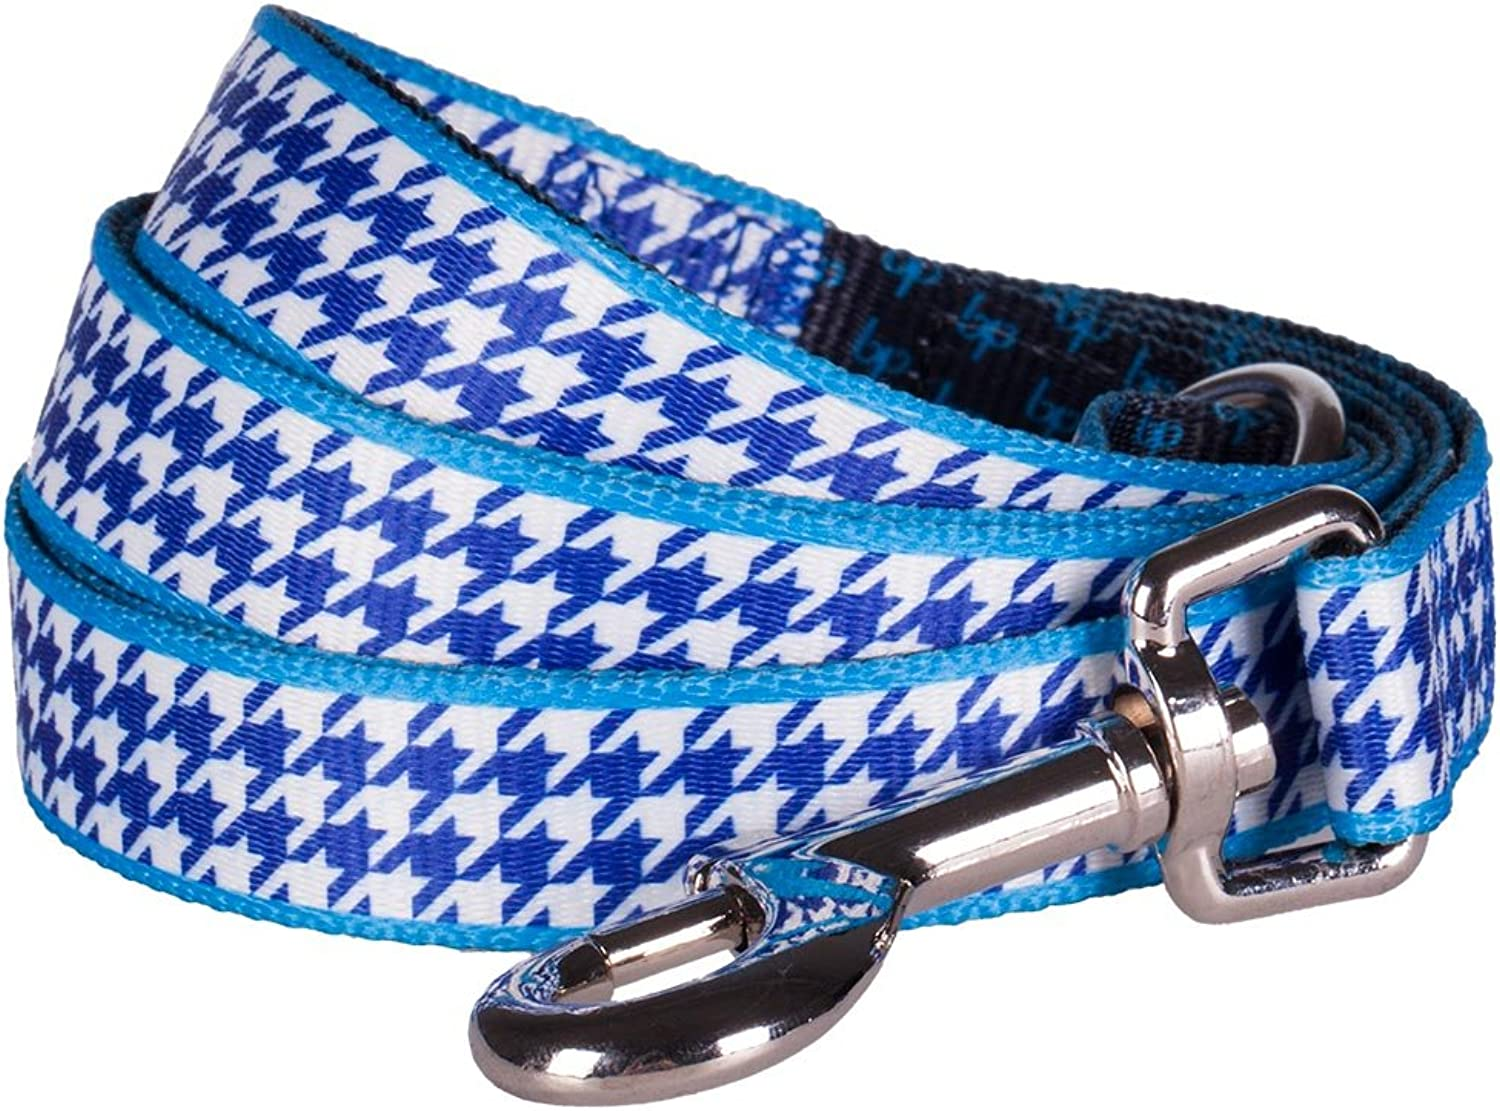 blueeberry Pet Durable Classy Houndstooth Statement Dog Leash 4 ft x 1  in Royal bluee, Large, Leashes for Dogs